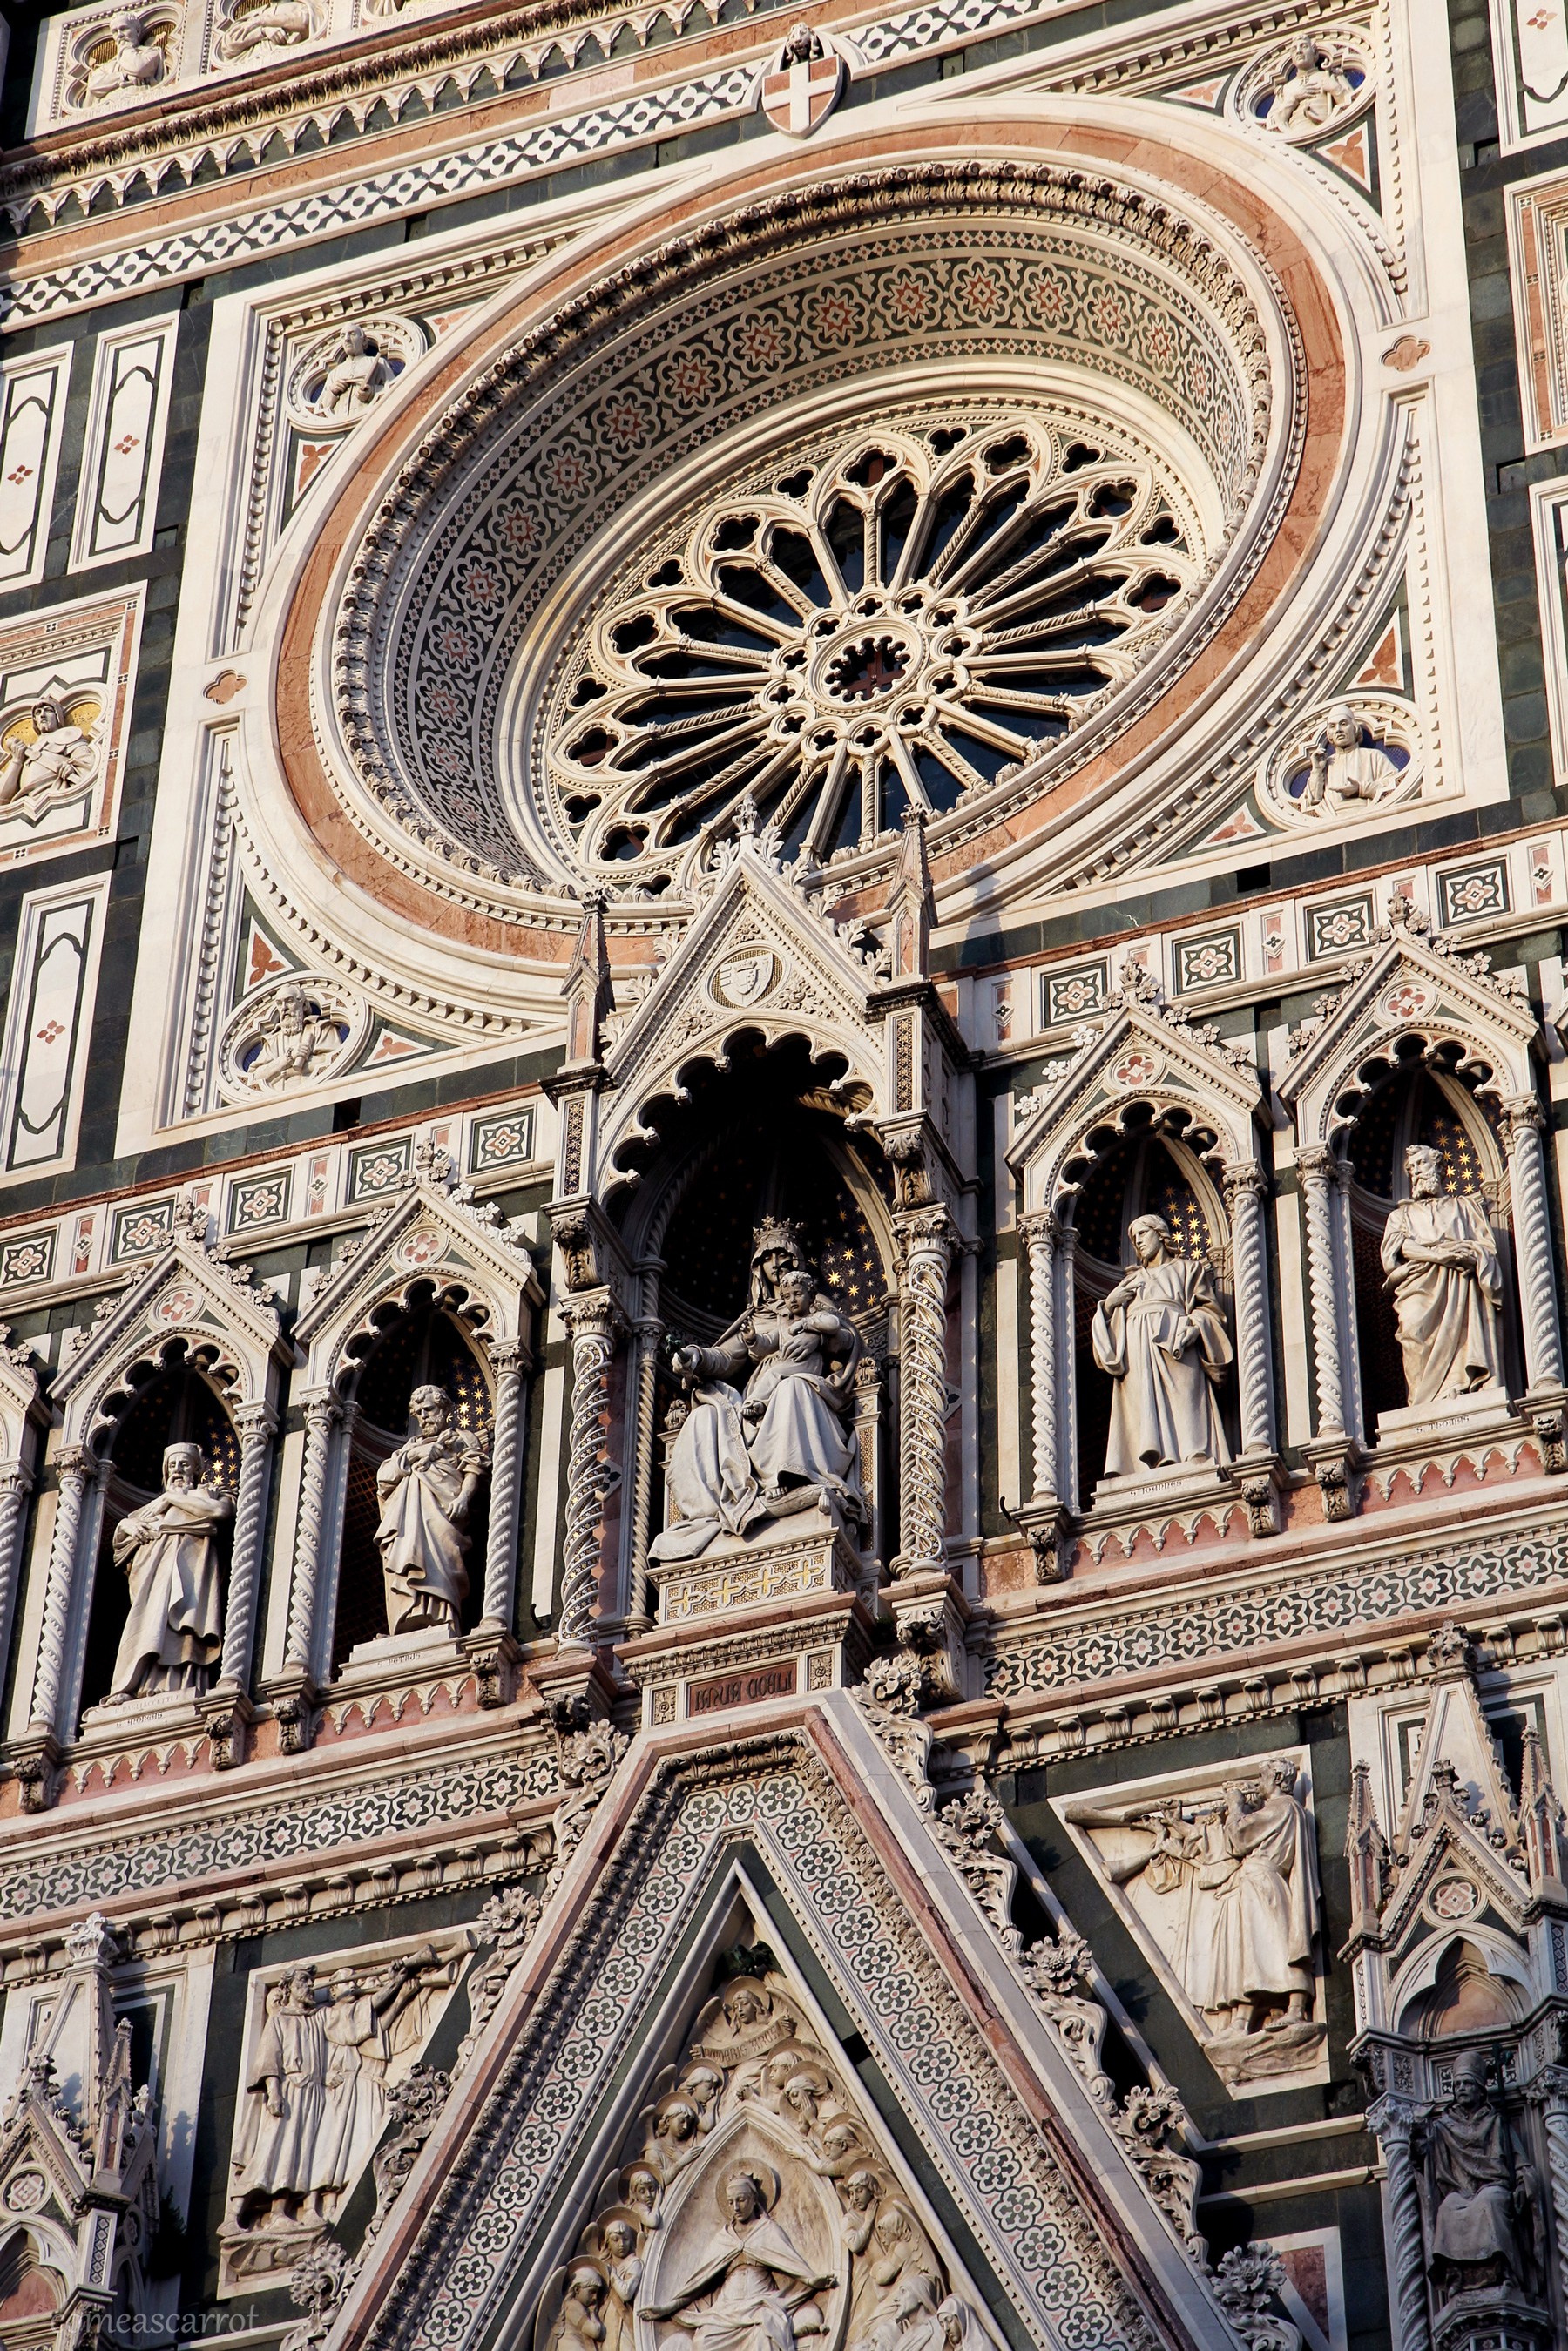 travel, florence, firenze, guide, tipps, florenz, italy, italien, city, fashionblog, fashion blog, blogger, fashionblogger, mode blog, deutschland, comeascarrot, come as carrot, things, to do, duomo, Santa Maria del Fiore, kathedrale